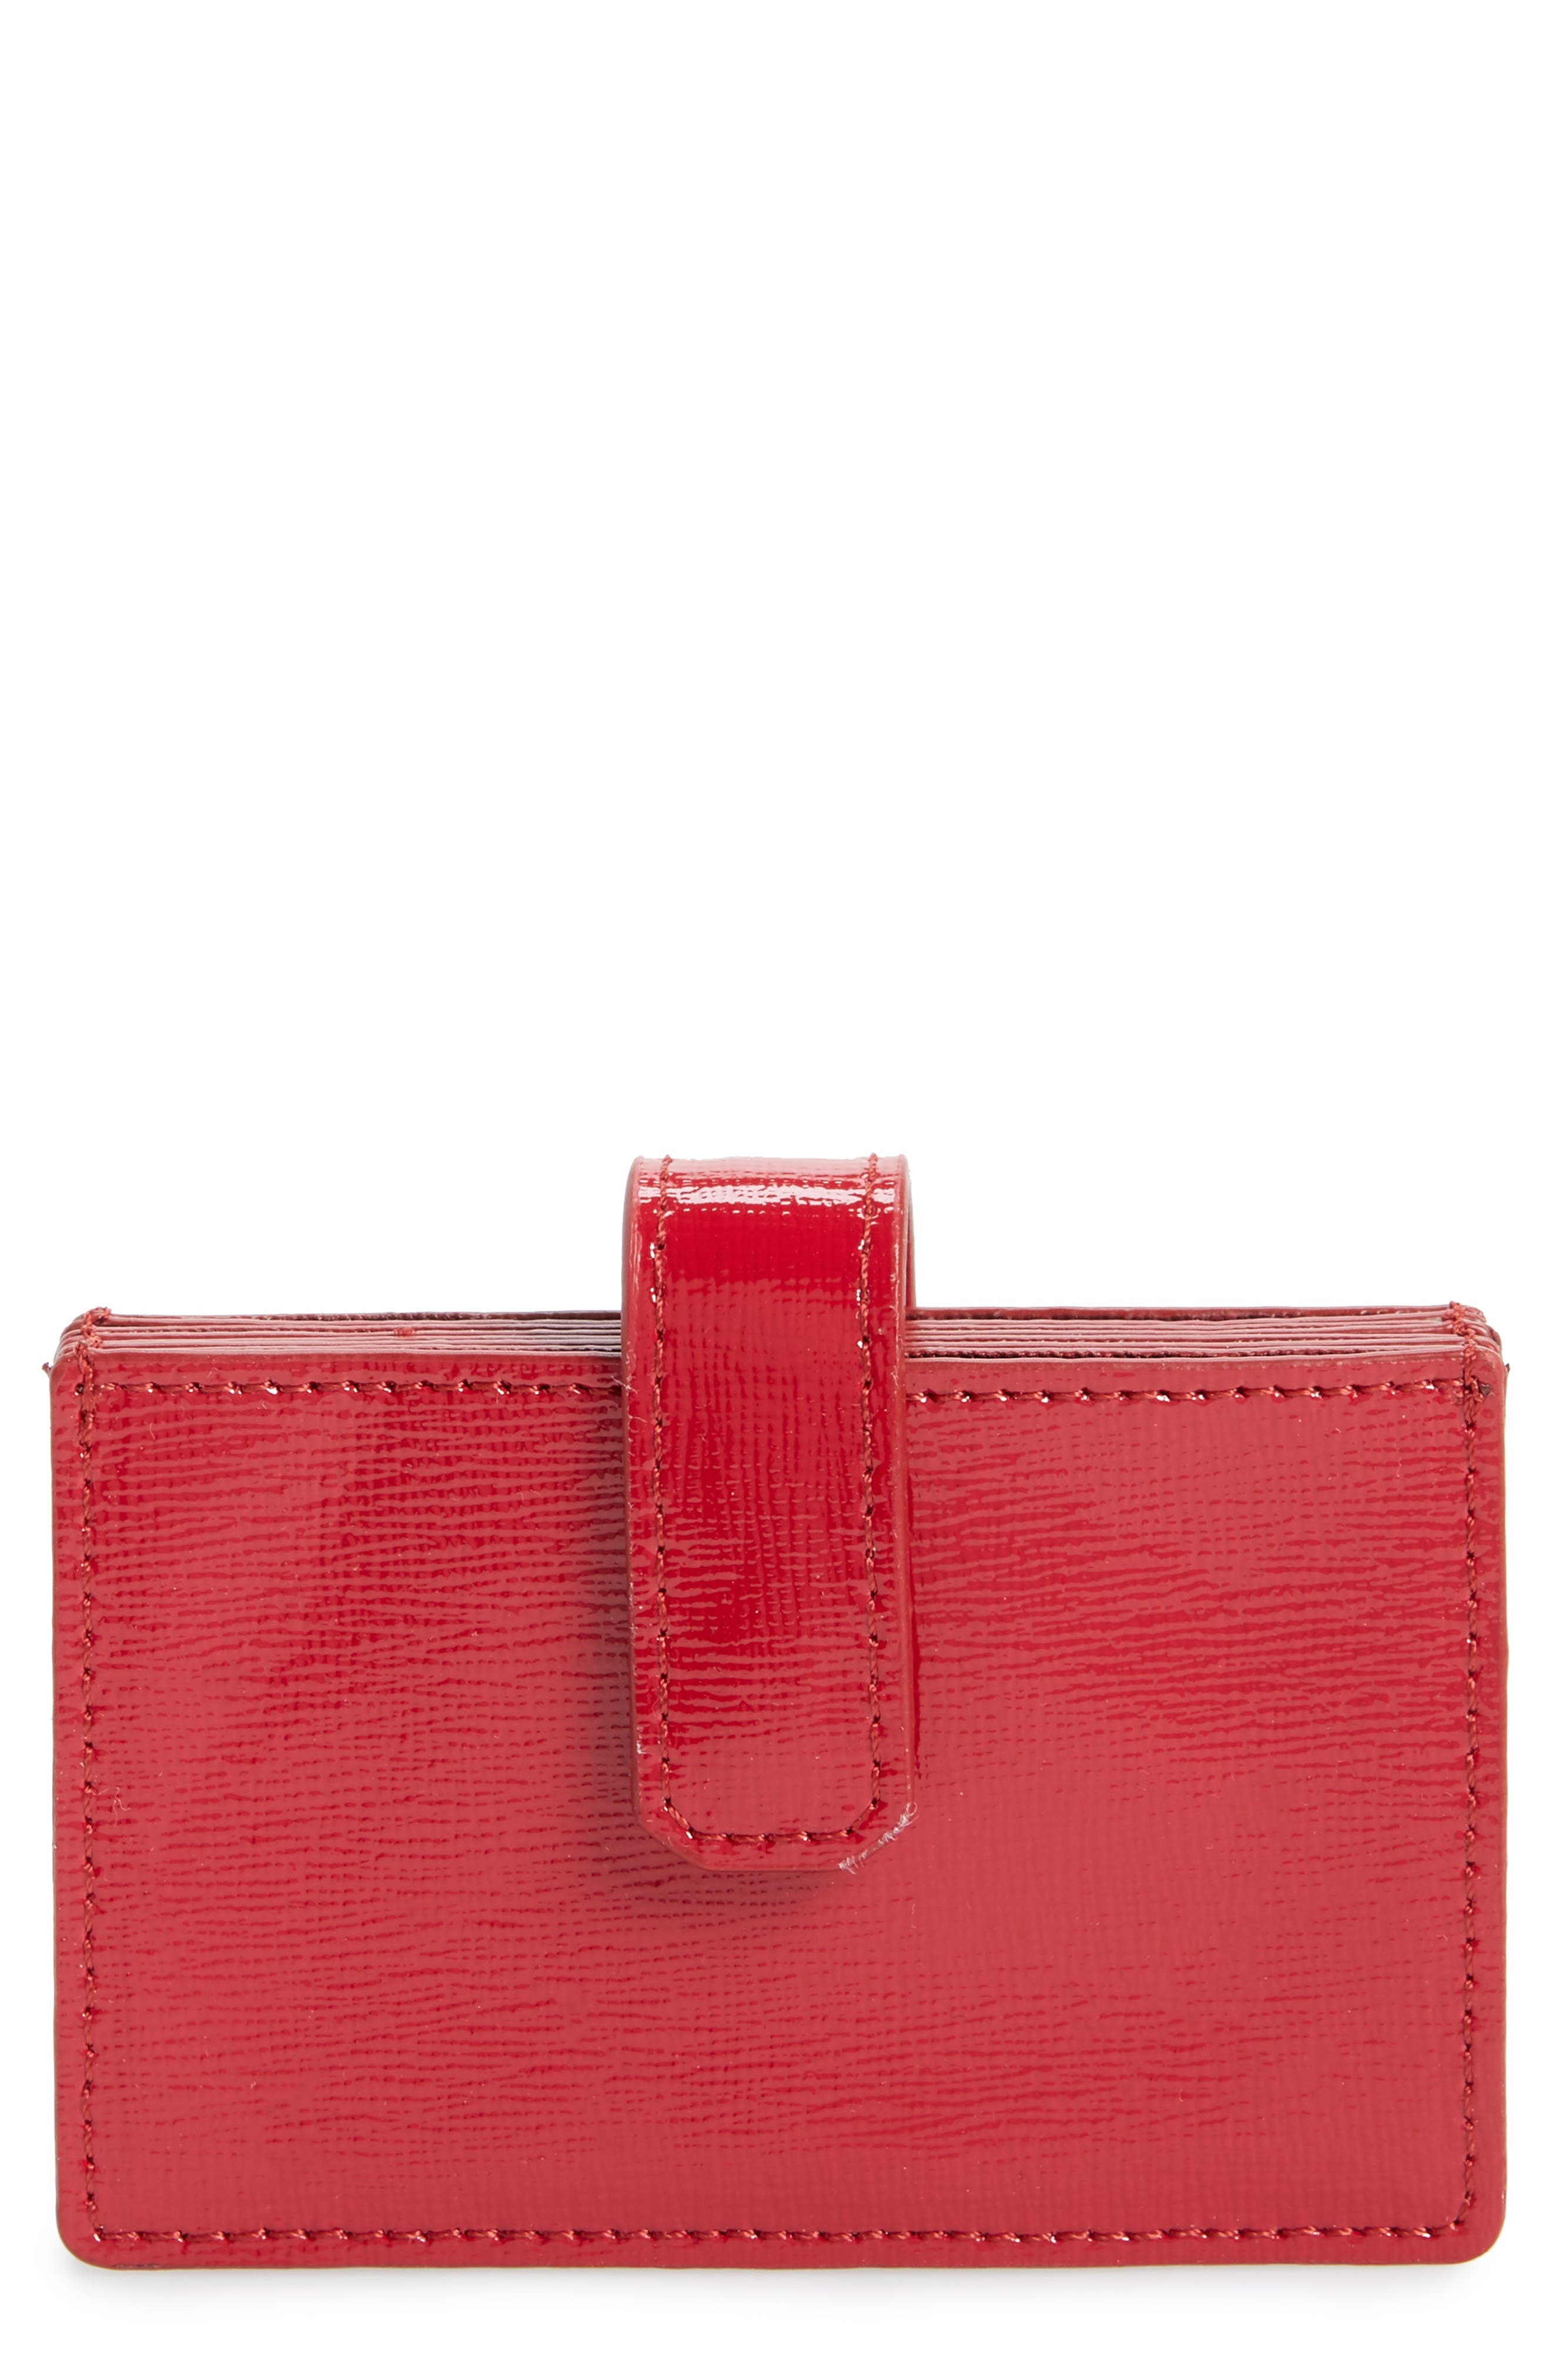 Accordion Leather Card Case,                             Main thumbnail 1, color,                             RED JESTER